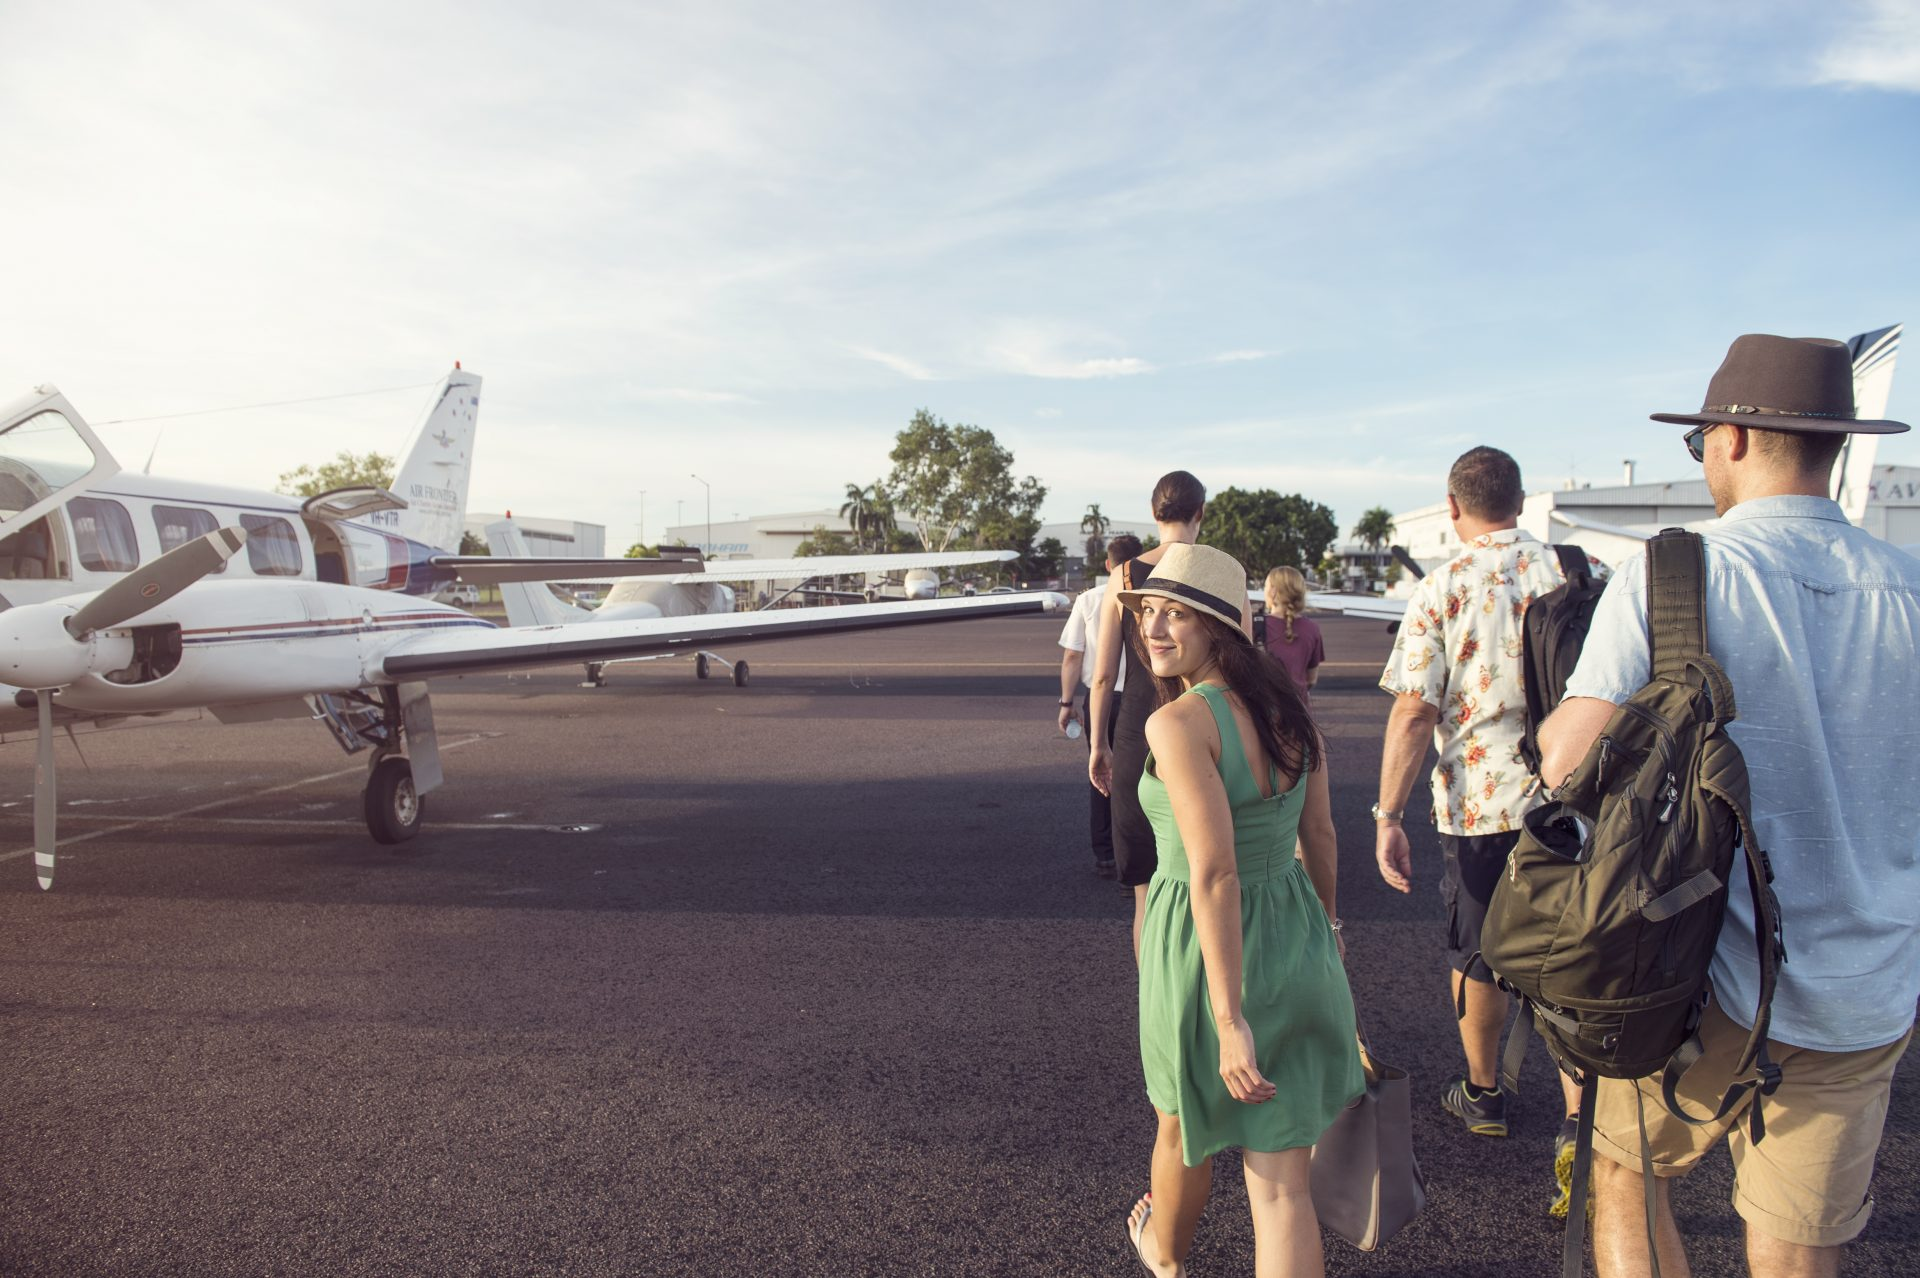 A group of visitors board a connecting flight to Tiwi Islands.